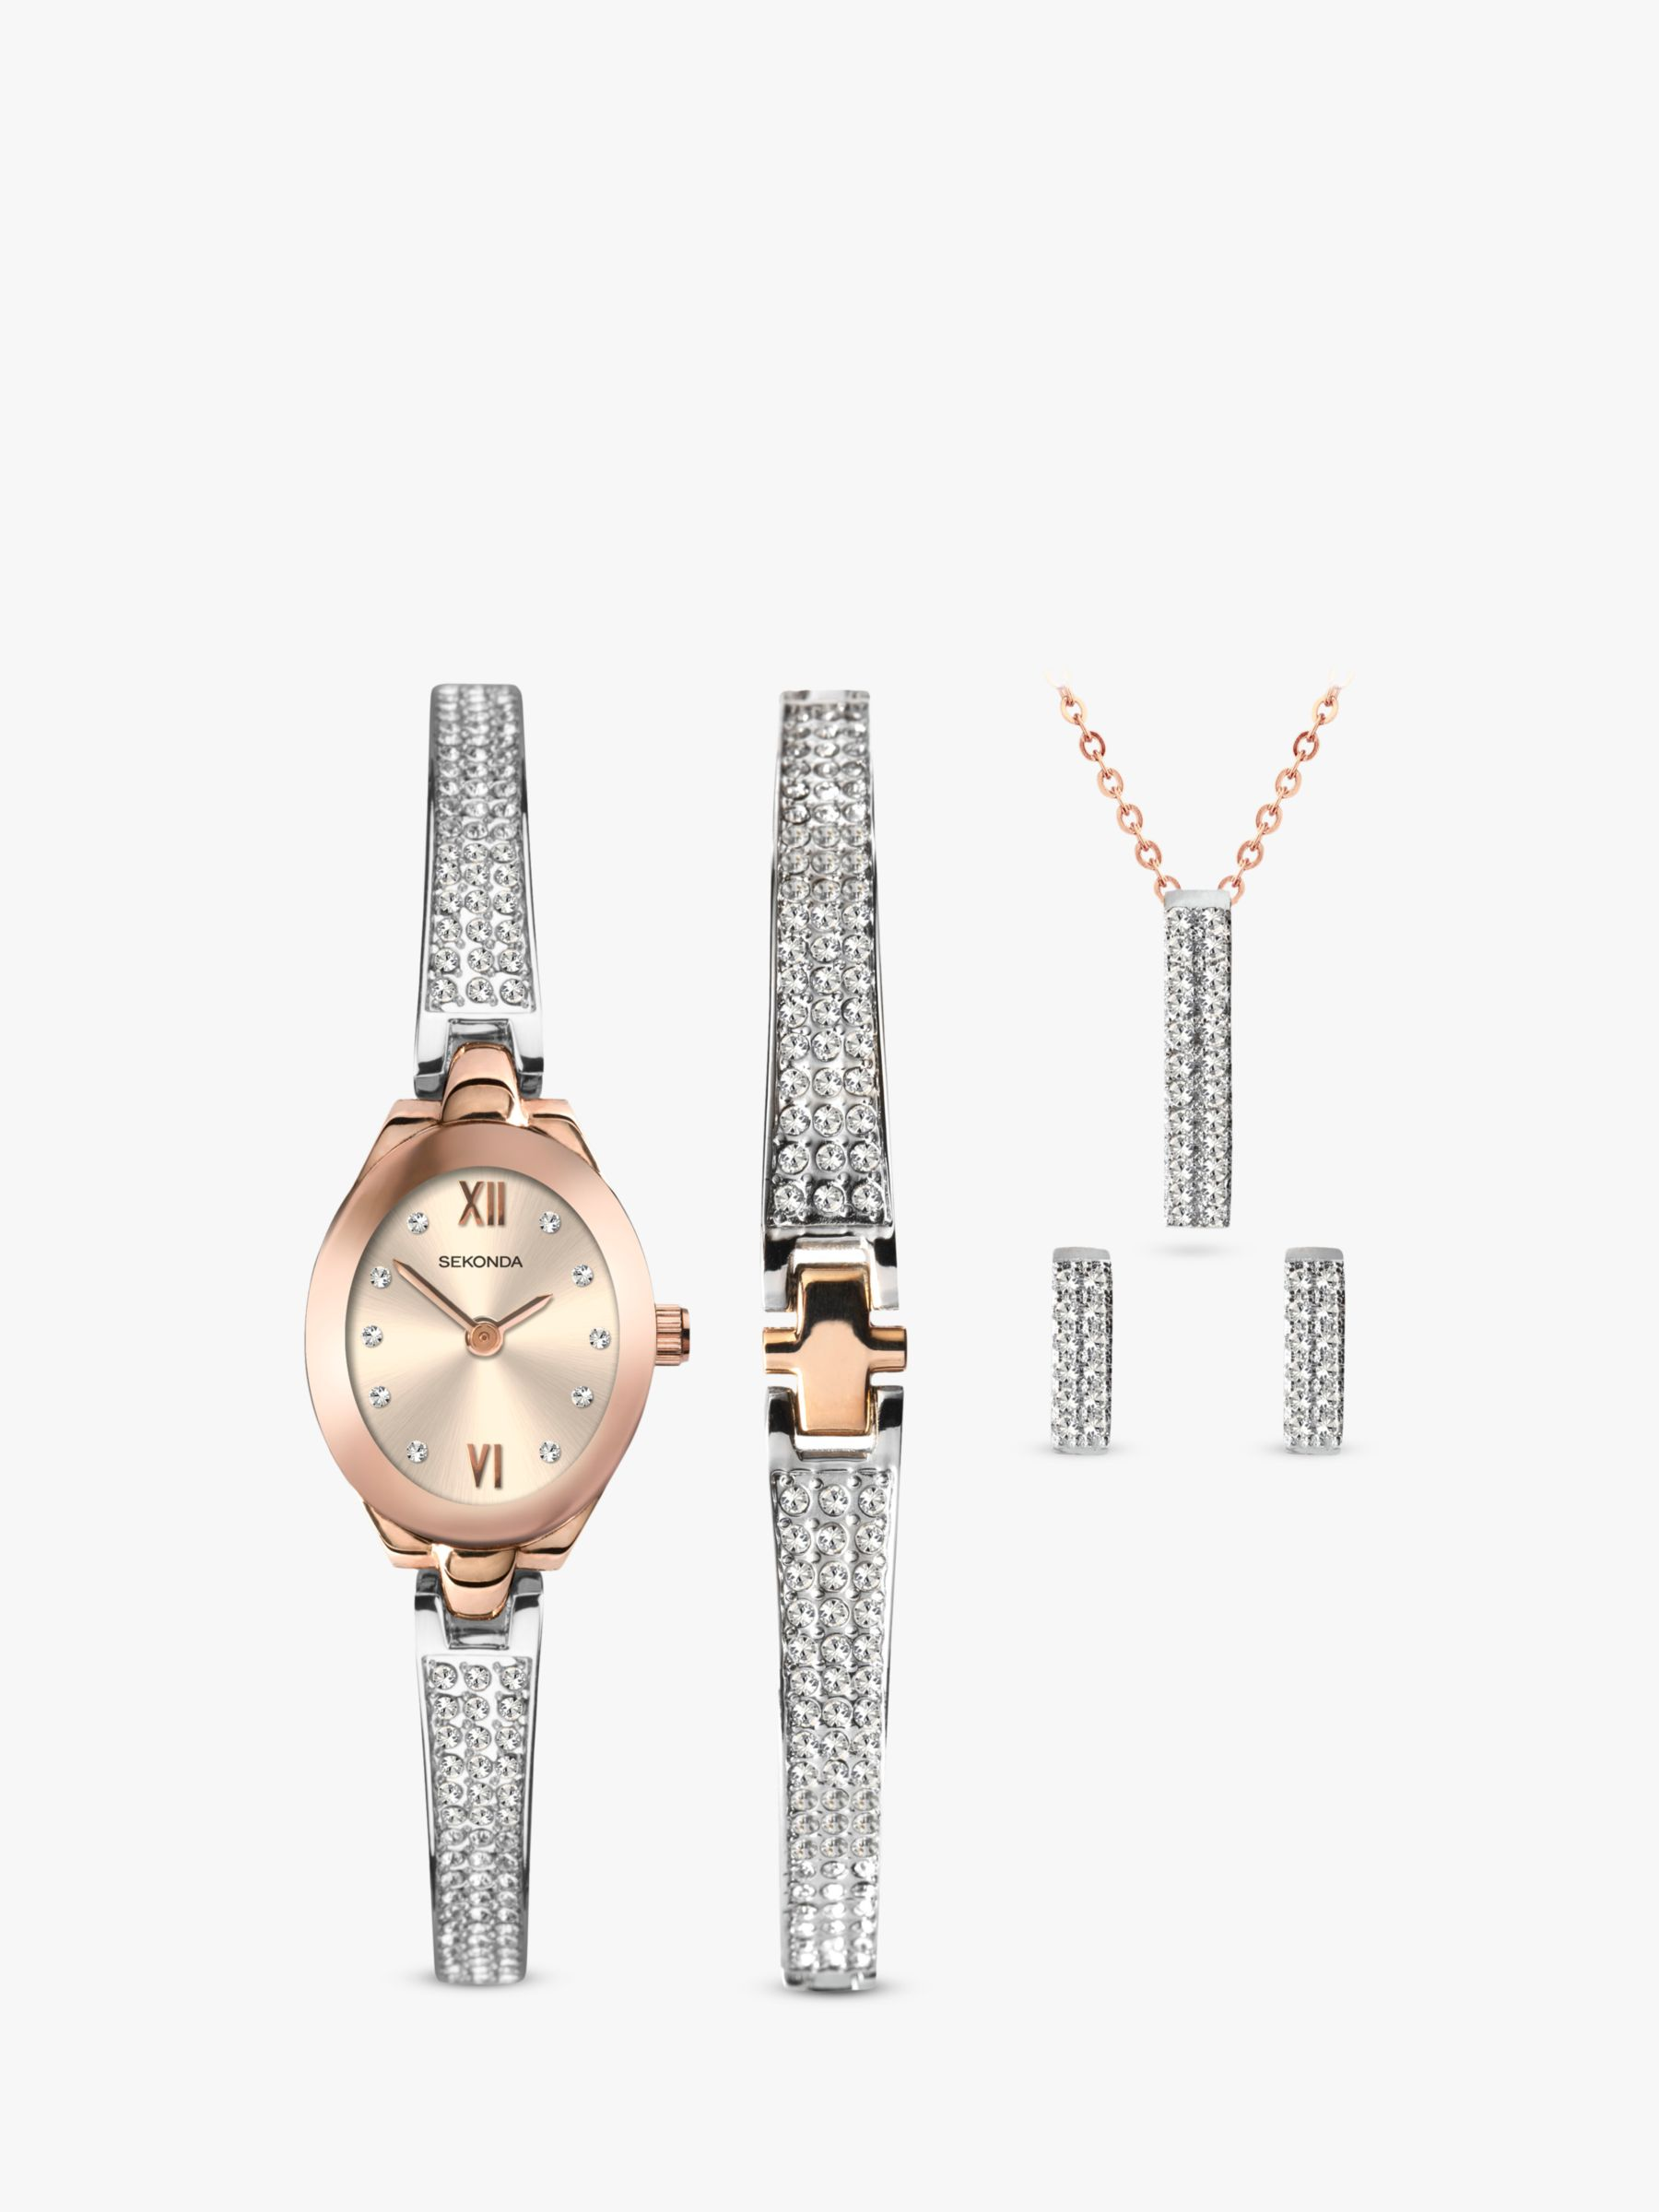 Sekonda Sekonda 2924G Women's Crystal Bracelet Strap Watch, Bracelet, Necklace and Stud Earrings Jewellery Gift Set, Silver/Rose Gold